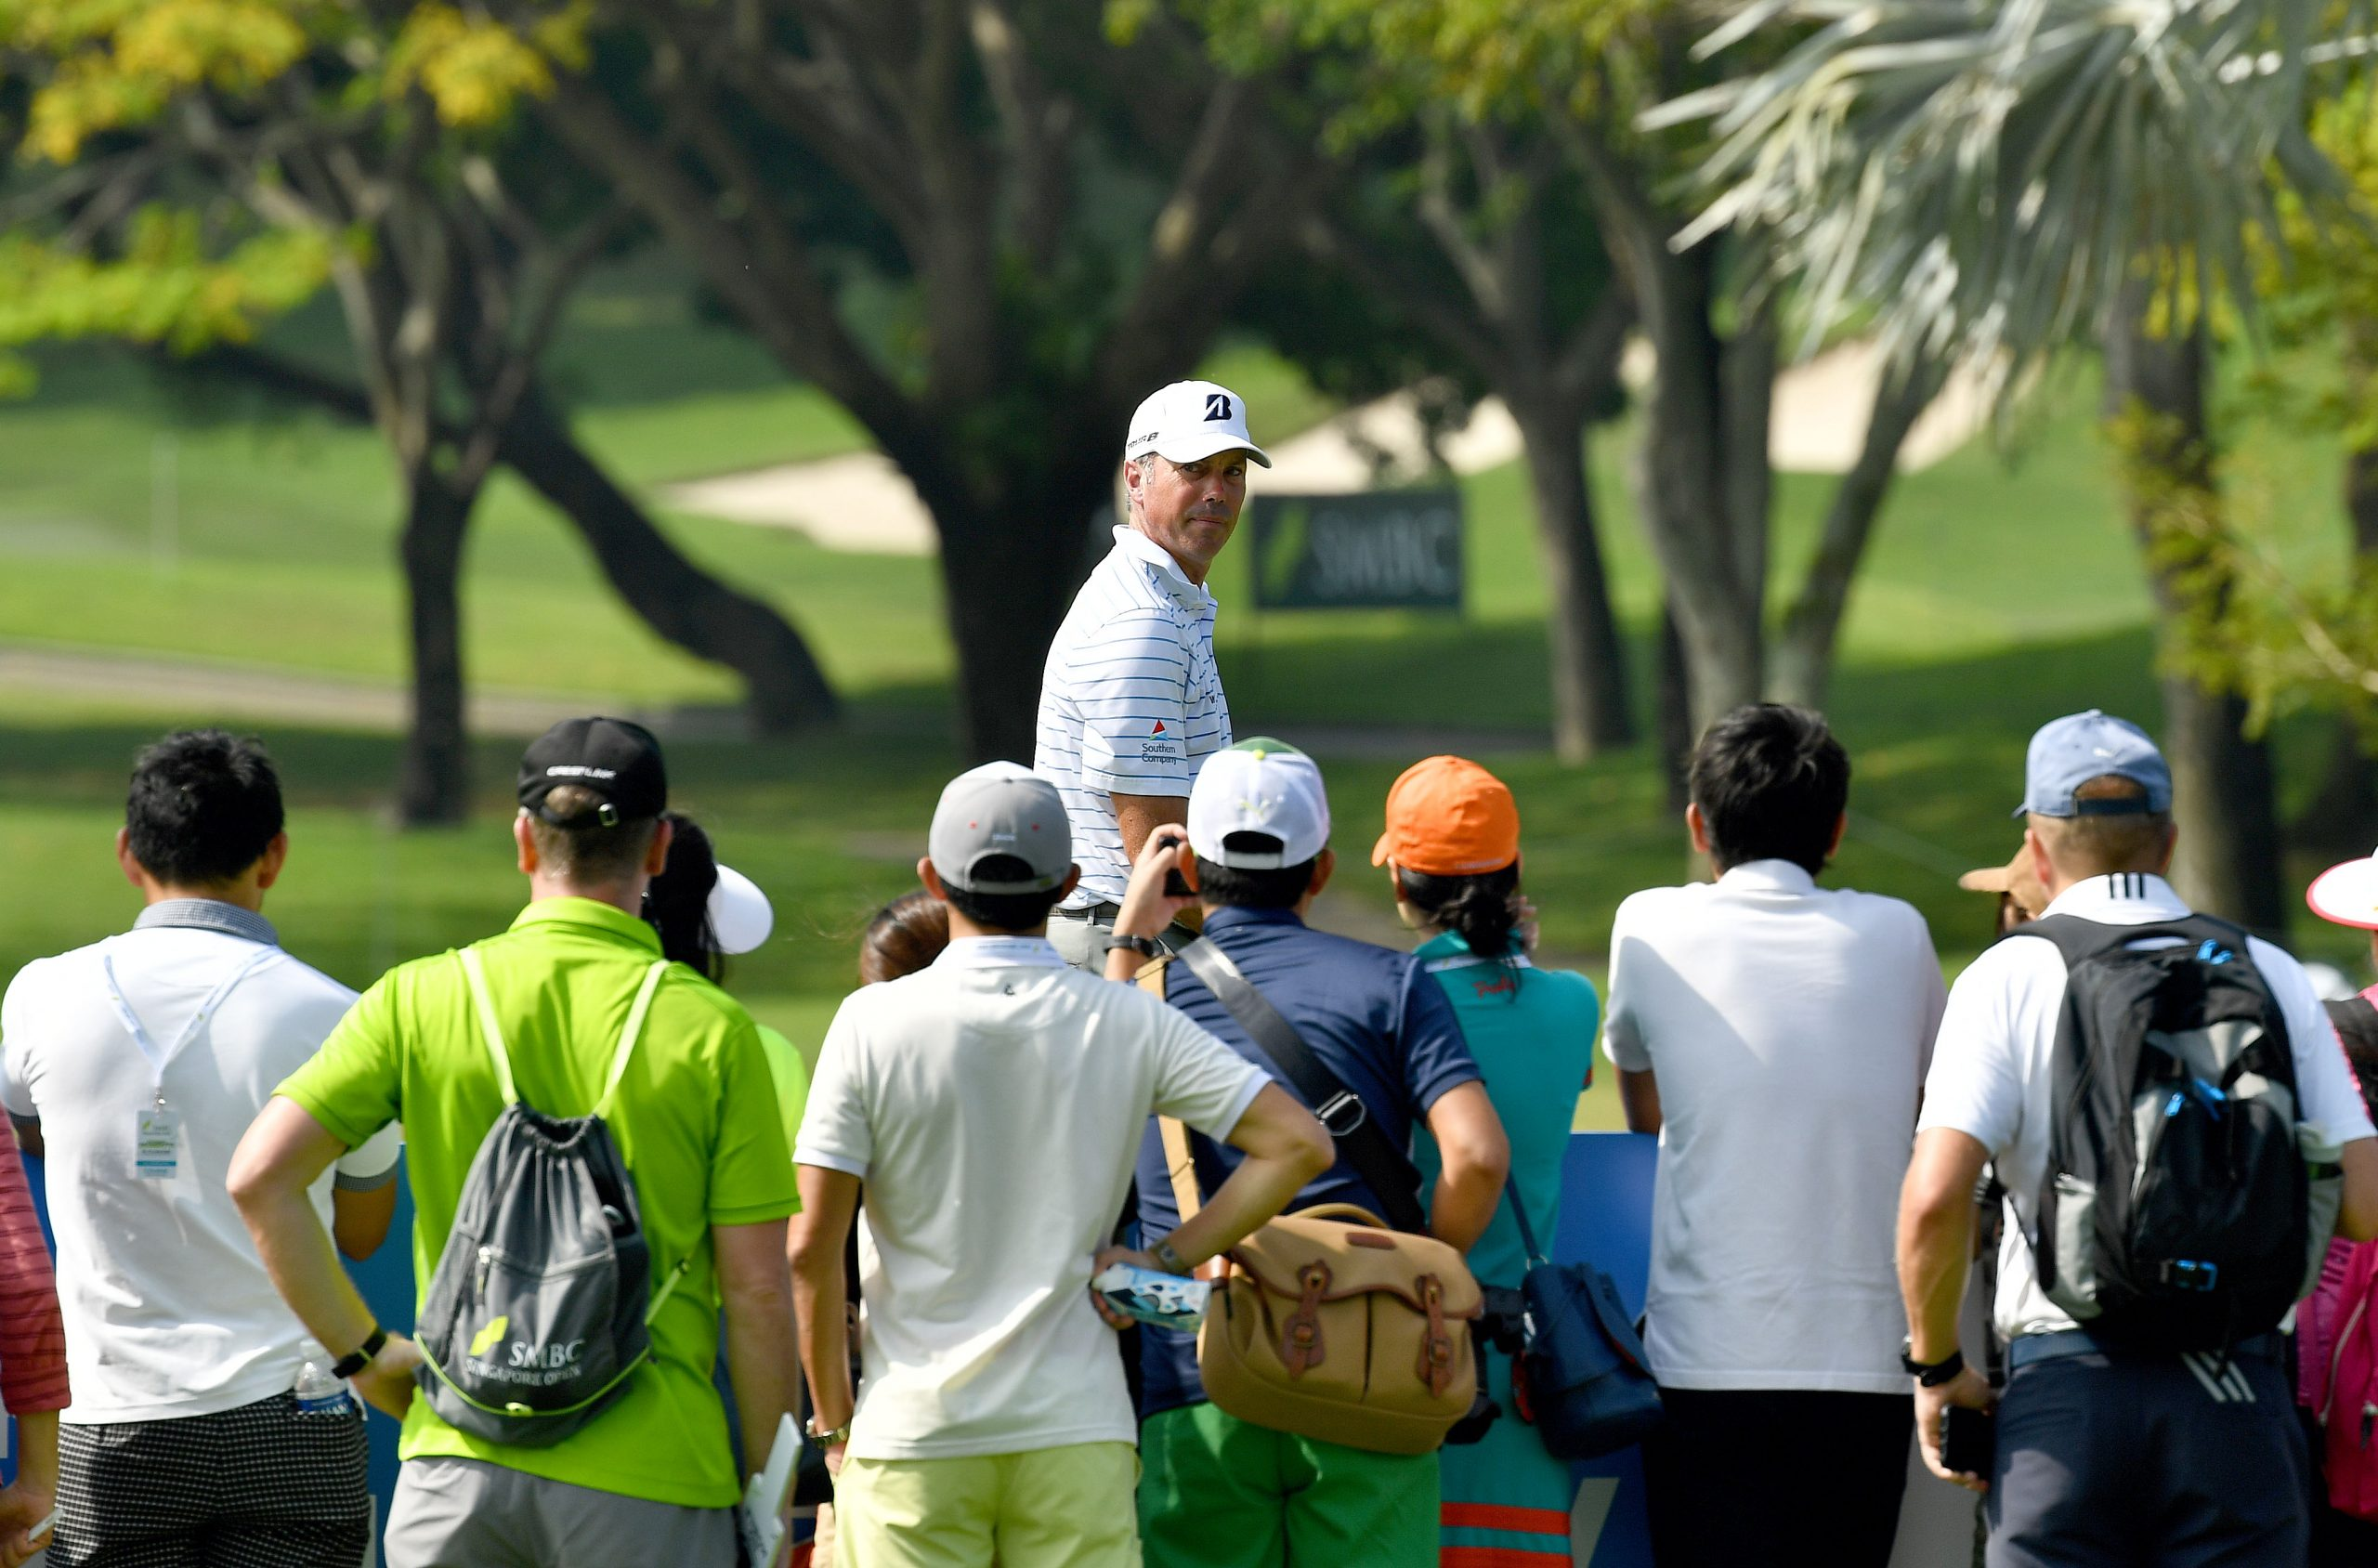 Matt Kuchar loves the travelling and the chance to play golf